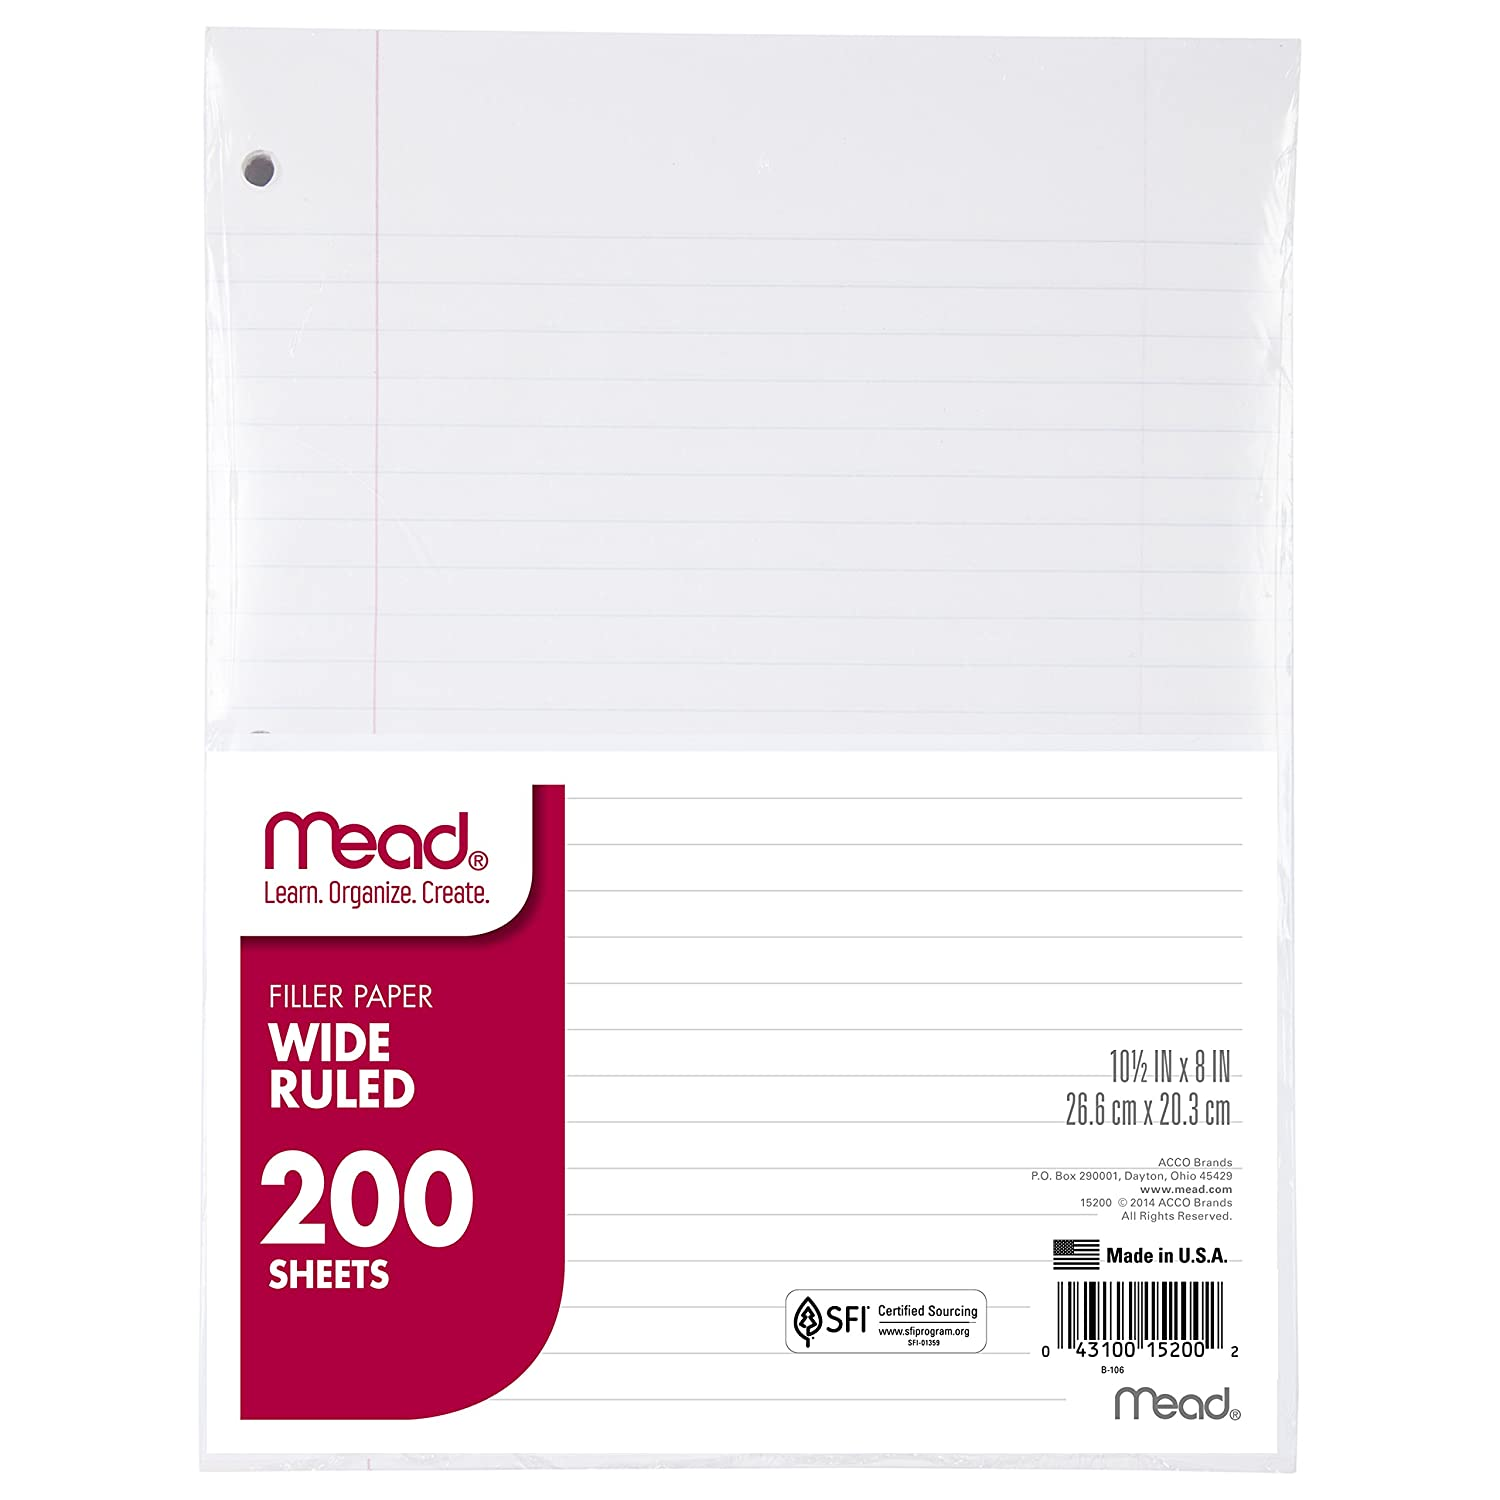 com mead filler paper loose leaf paper wide ruled paper  com mead filler paper loose leaf paper wide ruled paper 200 sheets 10 1 2 x 8 white 15200 prime pantry